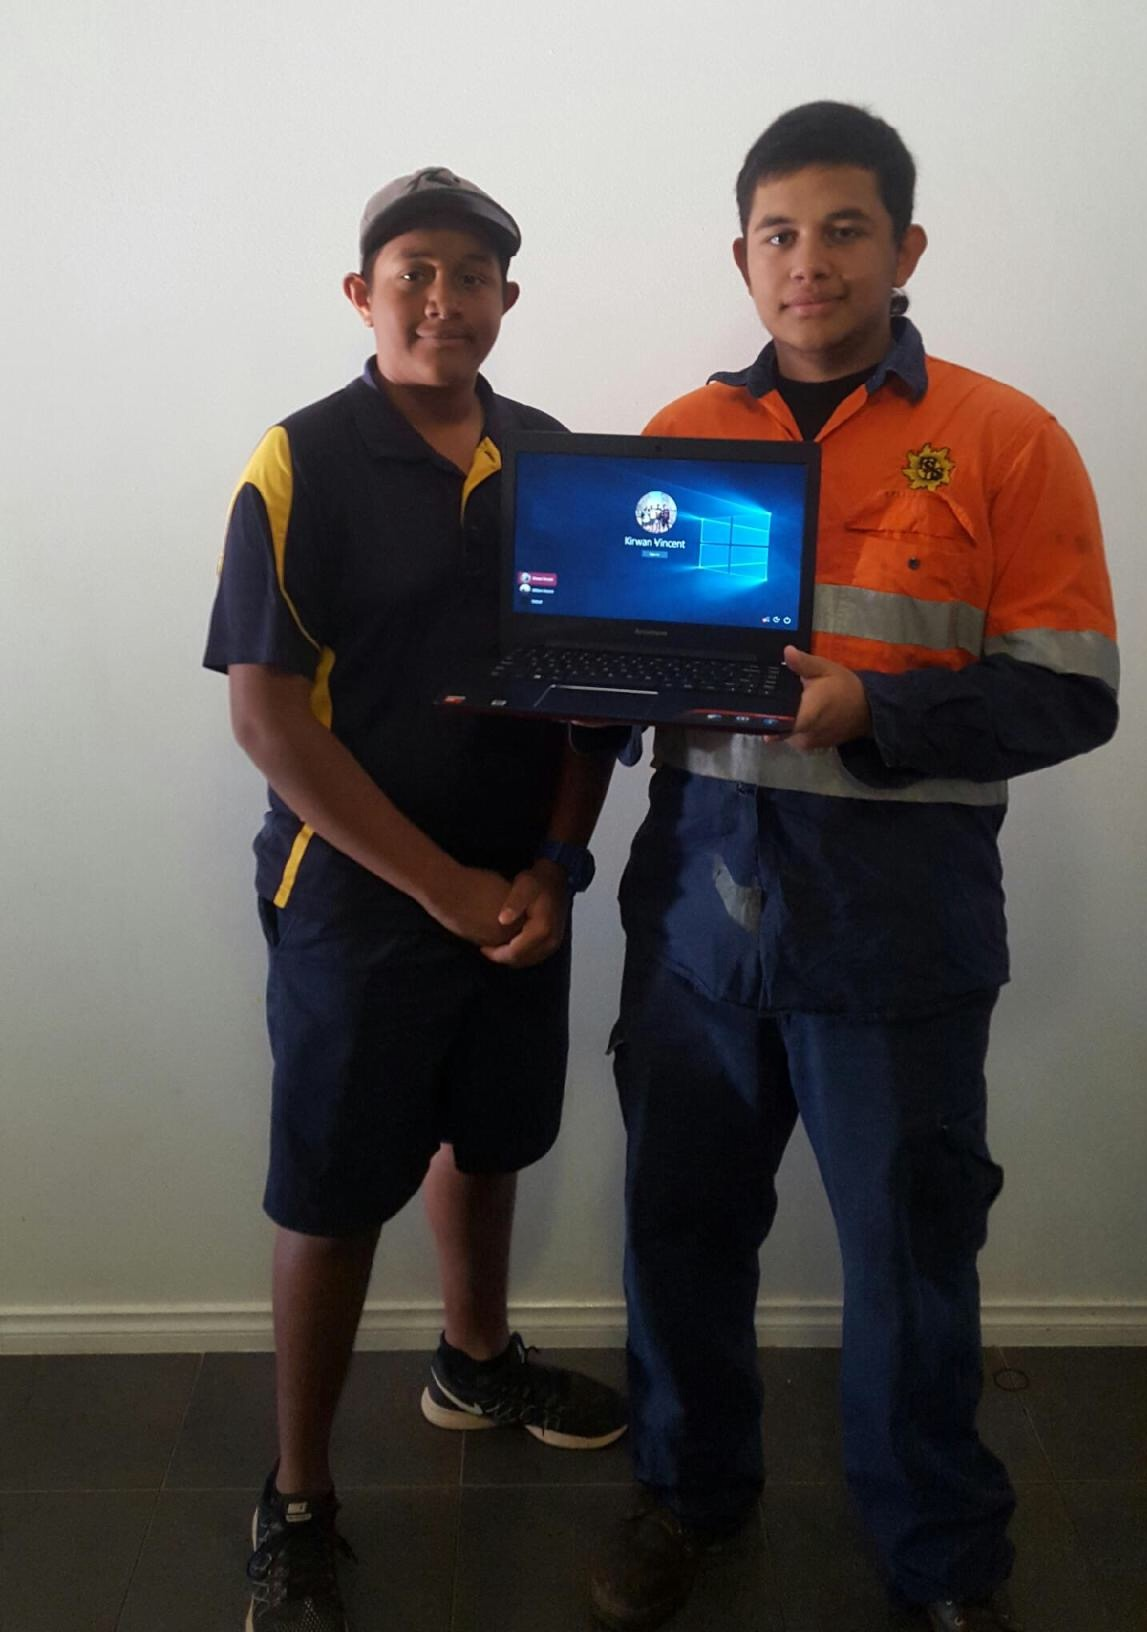 William and Kirwan Vincent with the laptop from the scholarship received from KRED Enterprises.